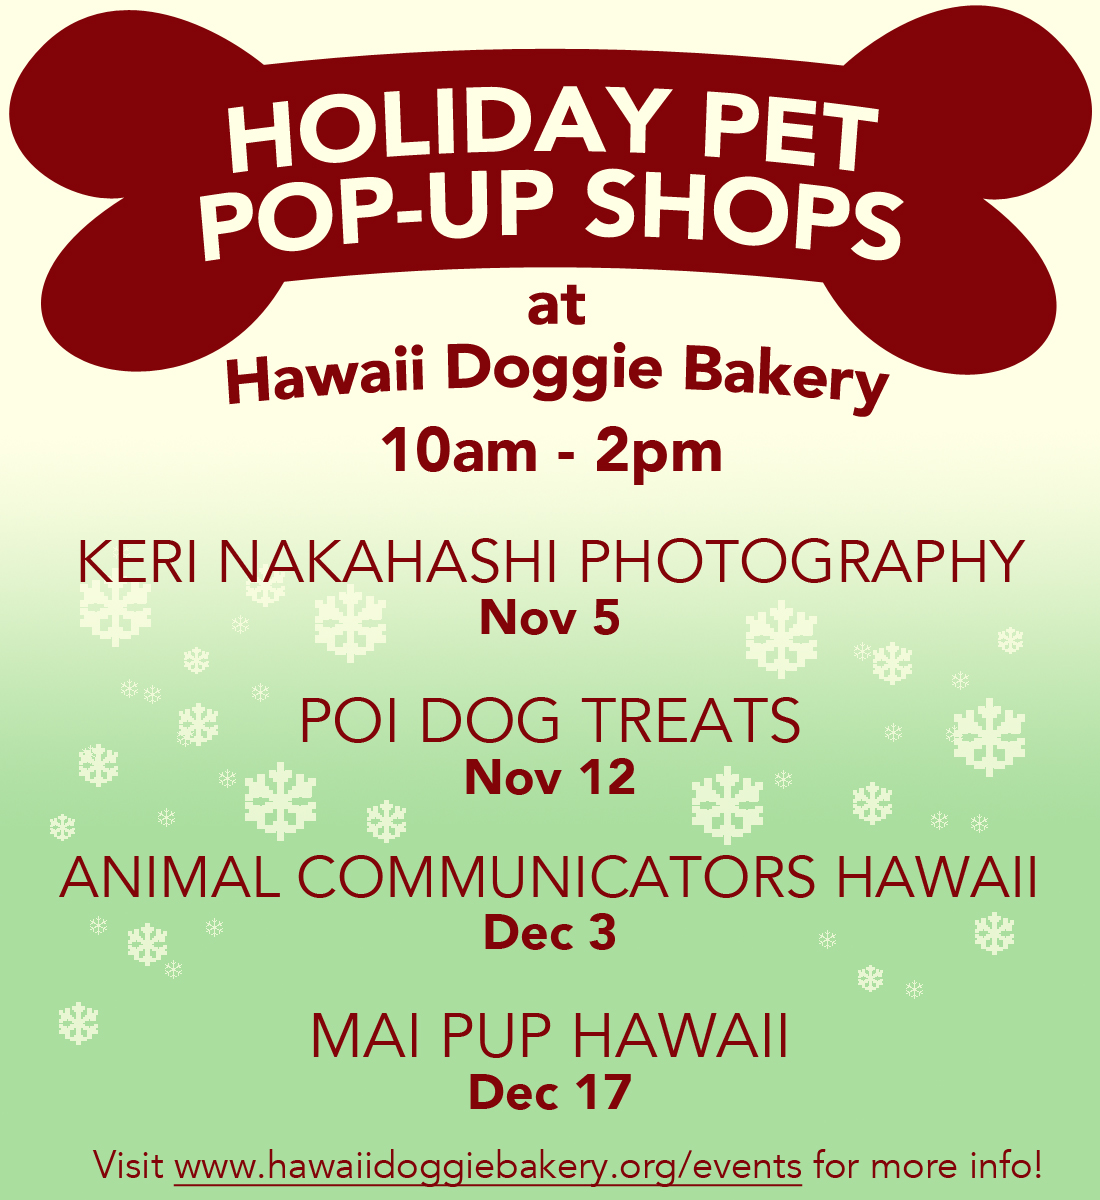 holiday-pet-pop-up-shops-2016